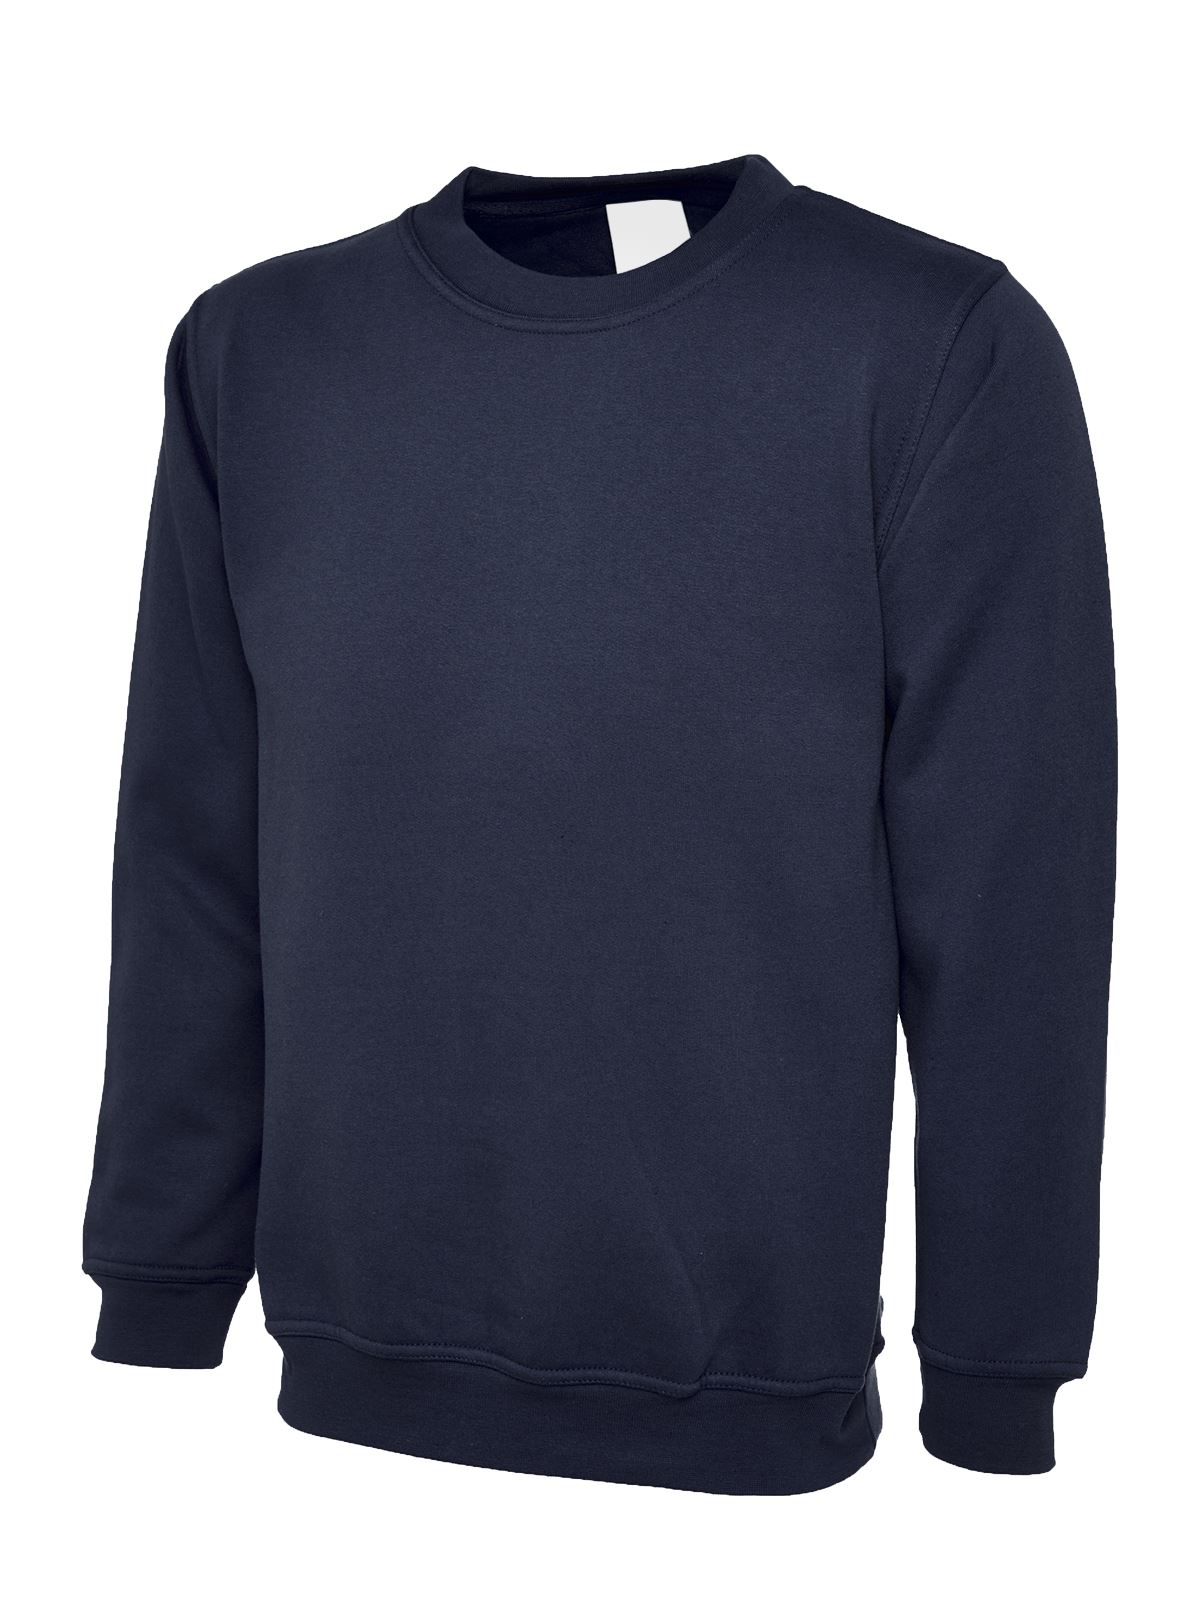 Mens-amp-Womens-Sweatshirt-Cotton-Polyester-Jumper-Plain-Sweater-Work-Casual-lot